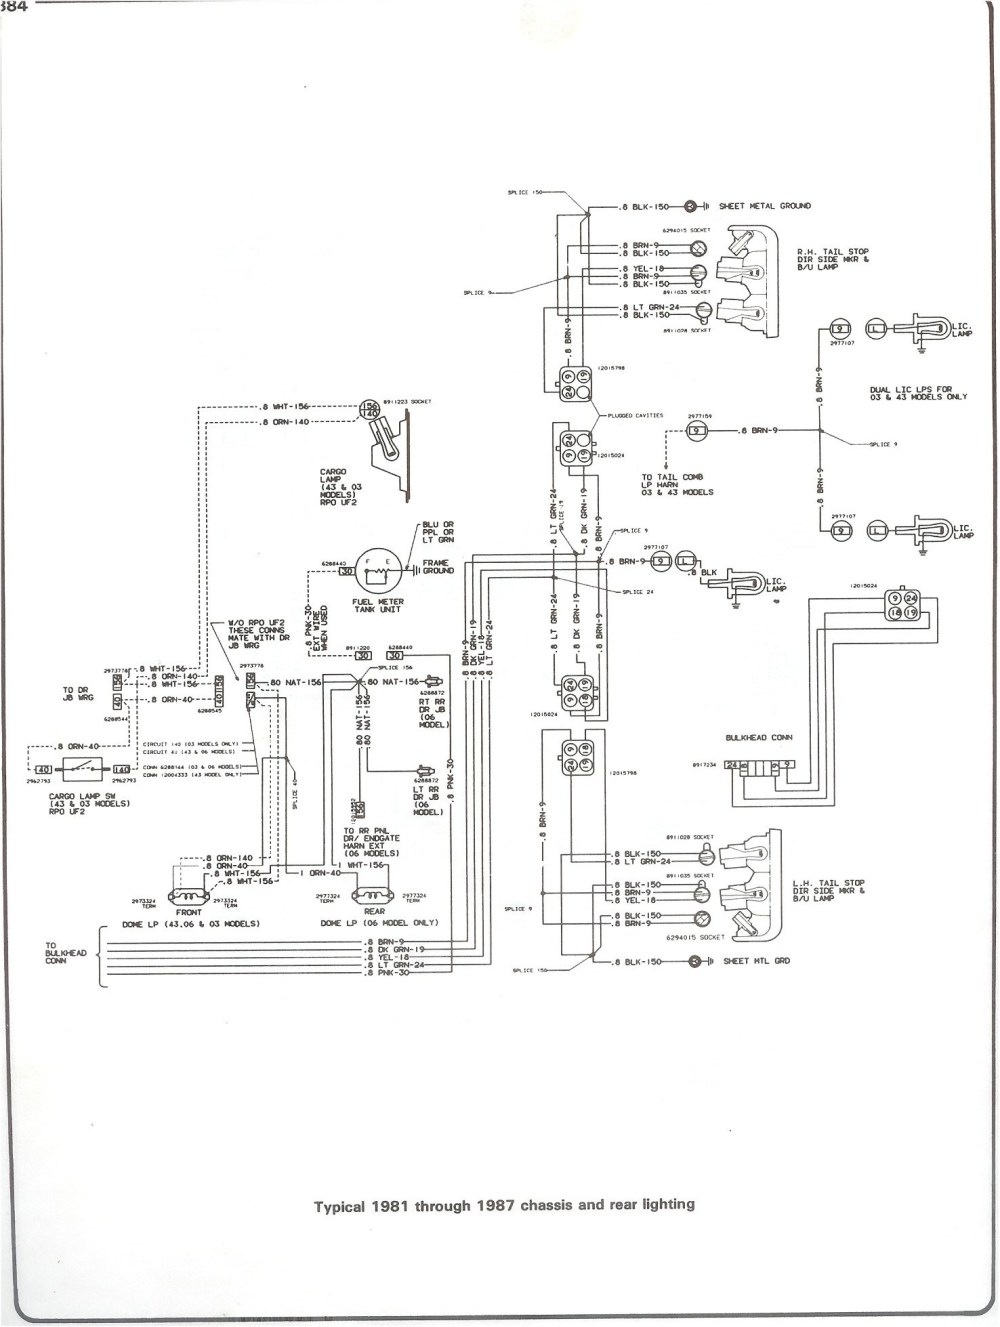 medium resolution of 82 c30 wiring diagram blog wiring diagram 1983 c30 wiring diagram